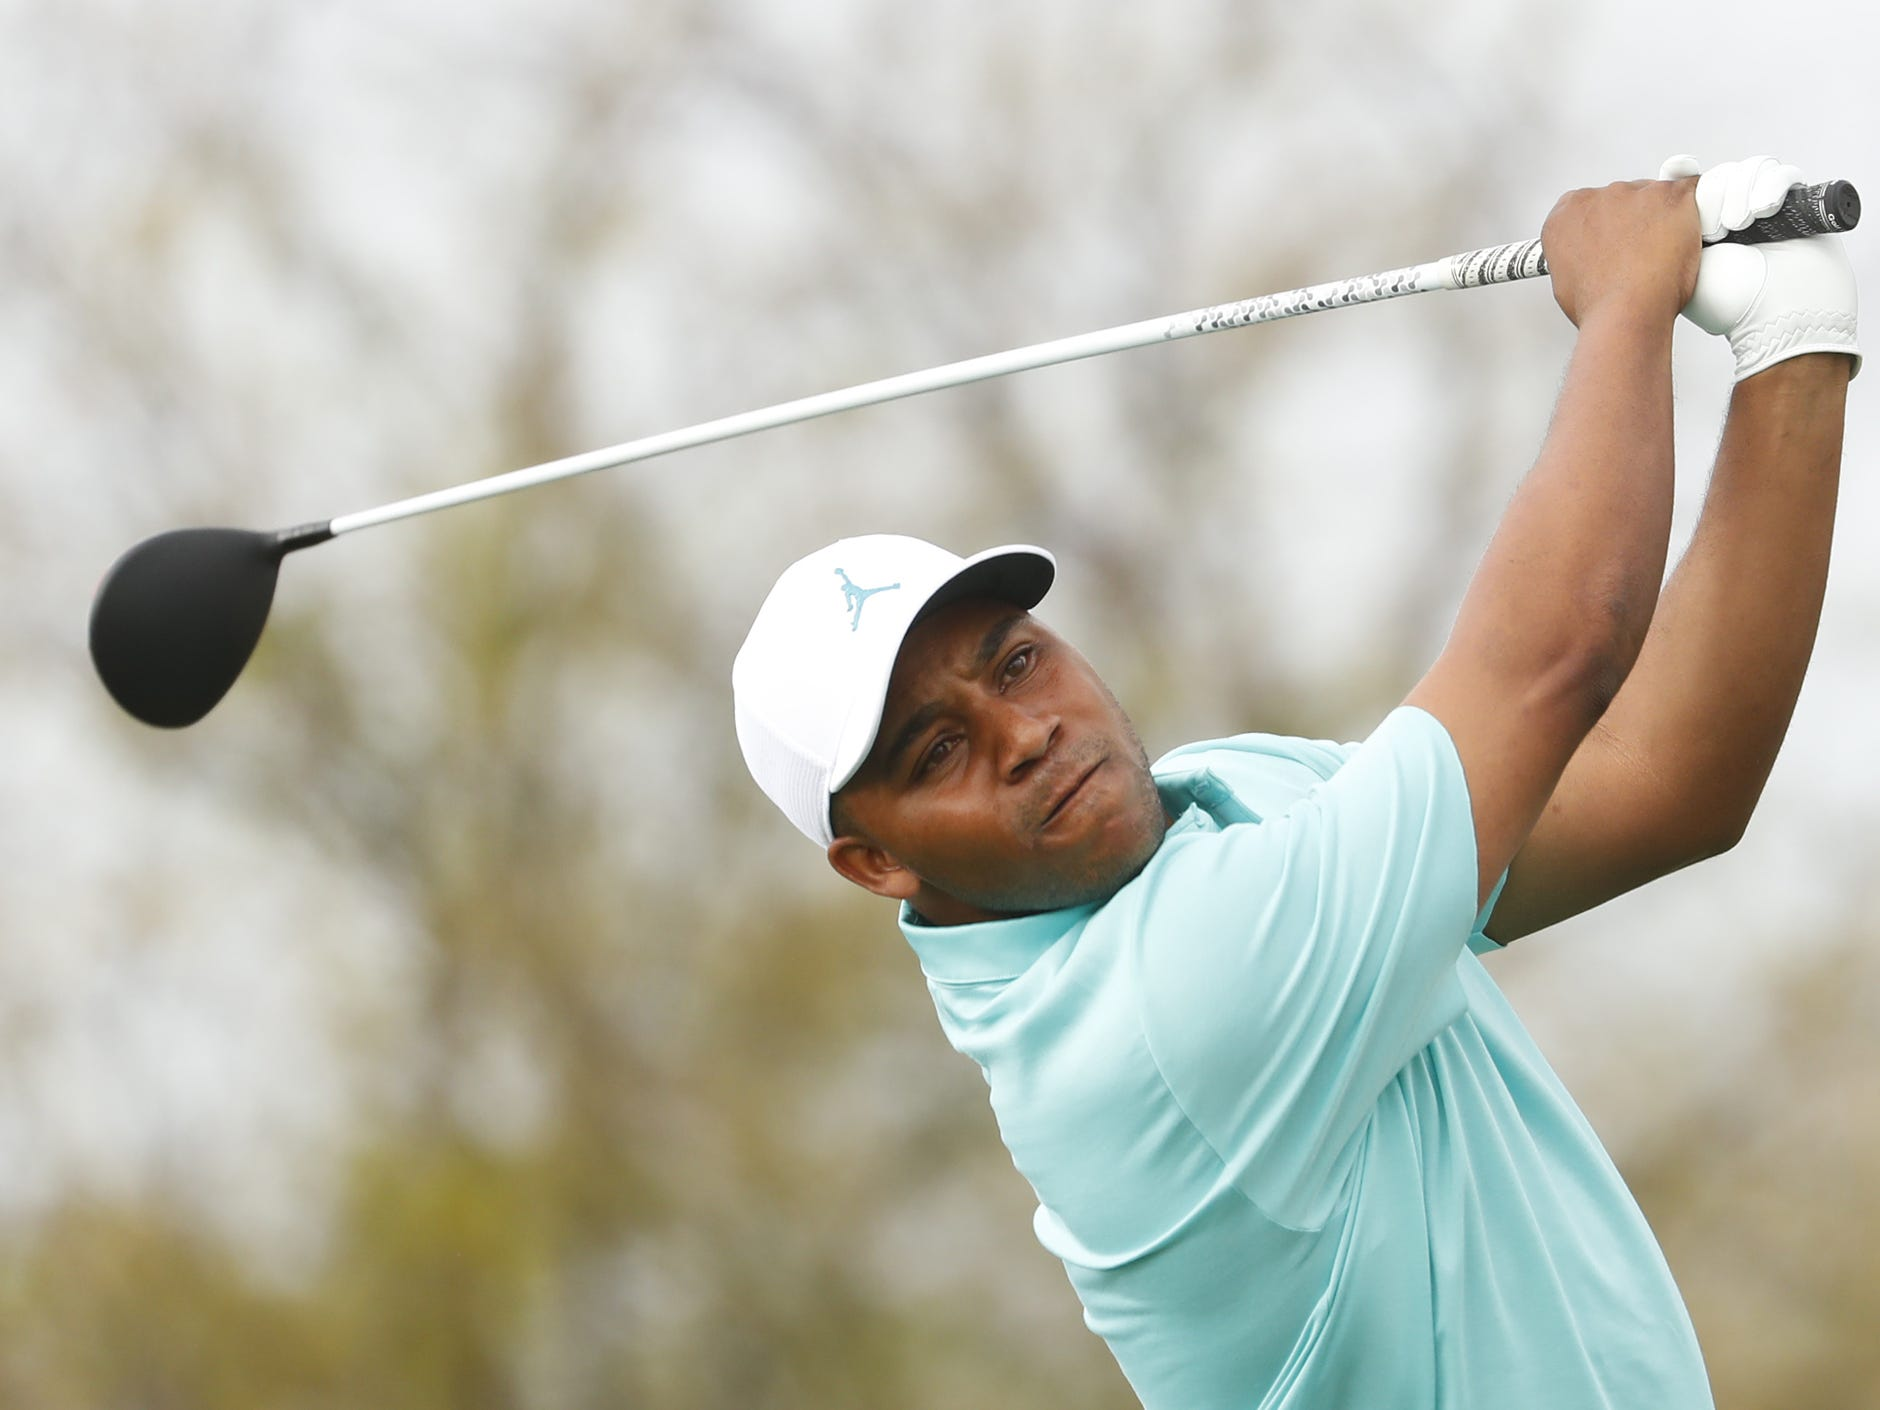 Harold Varner III tees off on the 8th hole during the third round of the Waste Management Phoenix Open at TPC Scottsdale in Scottsdale, Ariz. on February 2, 2019.